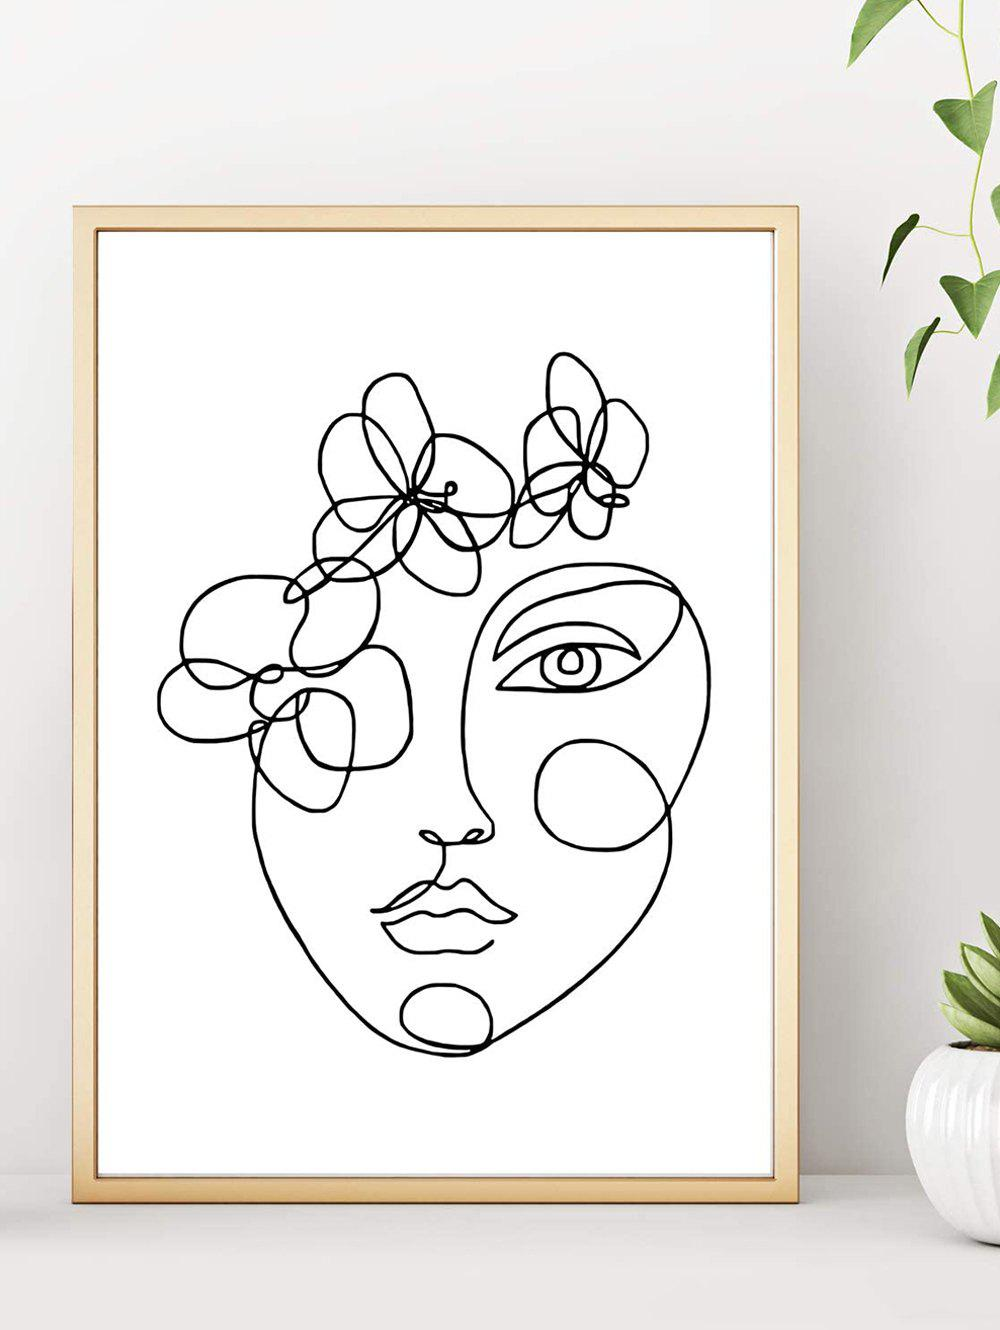 Home Decoration Flower Beauty Sketch Print Wall Poster - BLACK 40*60CM